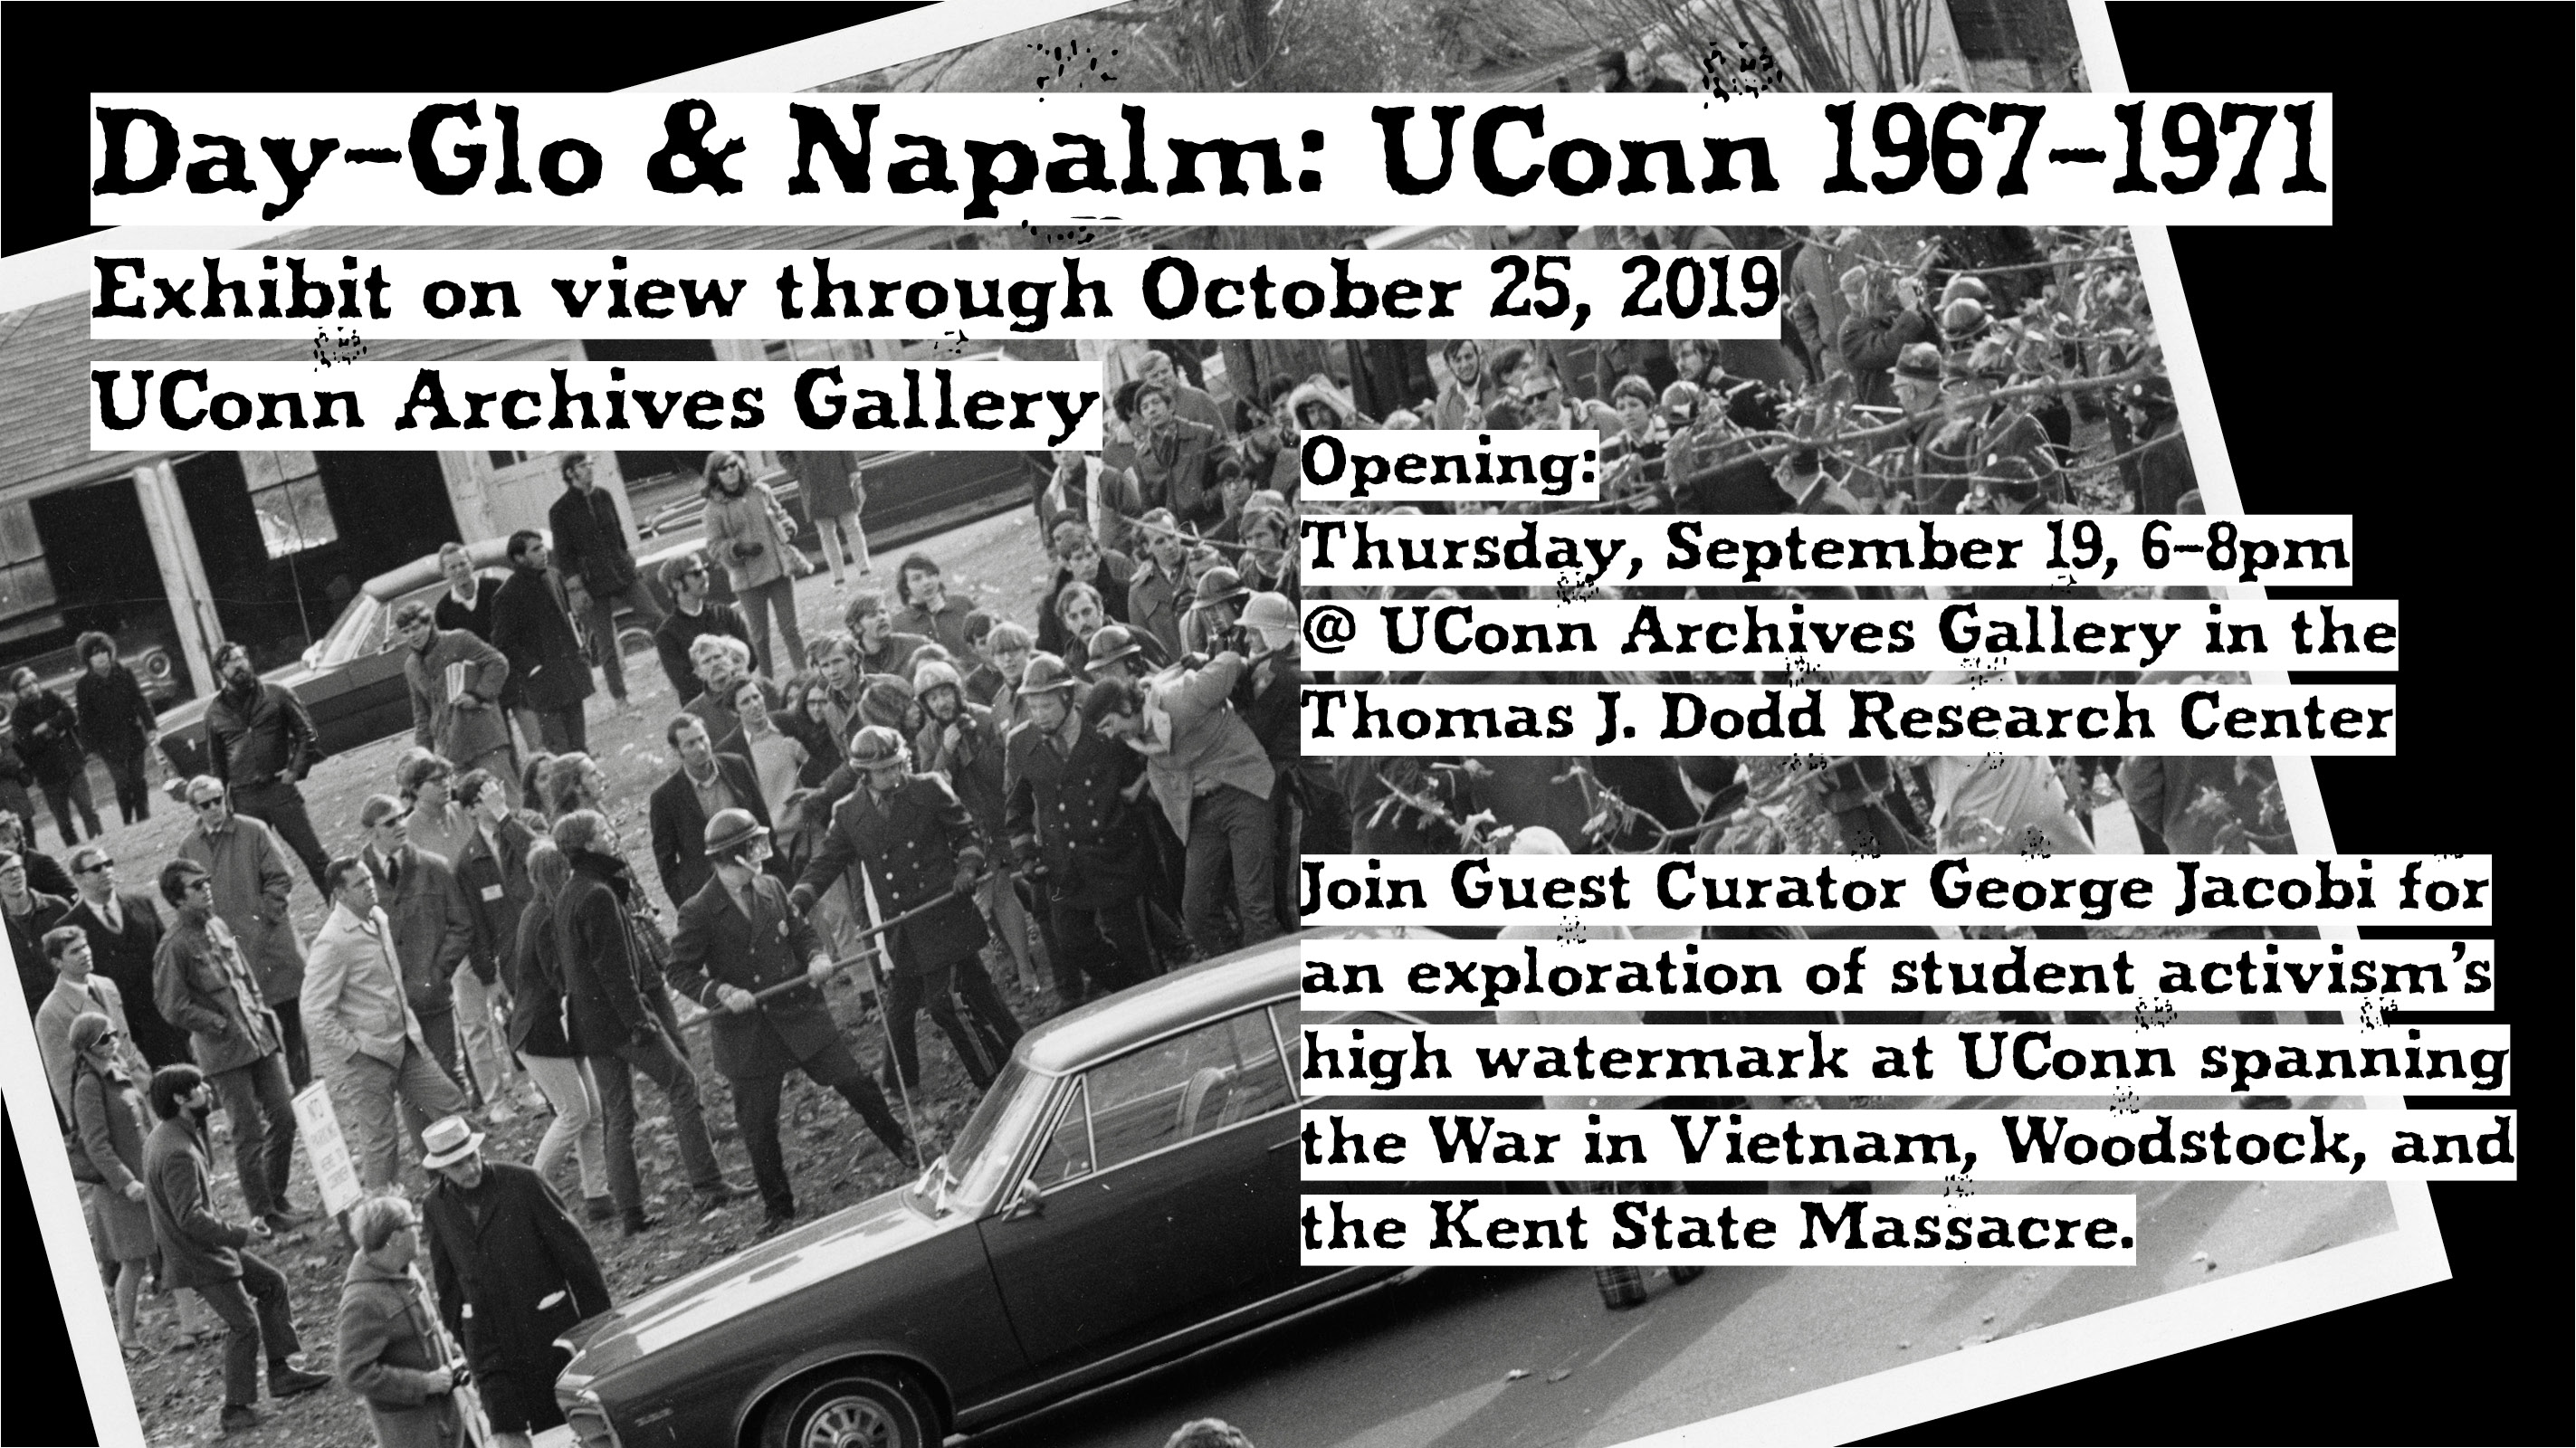 Day-Glo & Napalm: UConn 1967-1971, Exhibit on view through October 25, 2019, UConn Archives Gallery. Opening: Thursday, September 19, 6-8pm @ UConn Archives Gallery in the Thomas J. Dodd Research Center. Join Guest Curator George Jacobi for an exploration of student activism's high watermark at UConn spanning the War in Vietnam, Woodstock, and the Kent State Massacre.